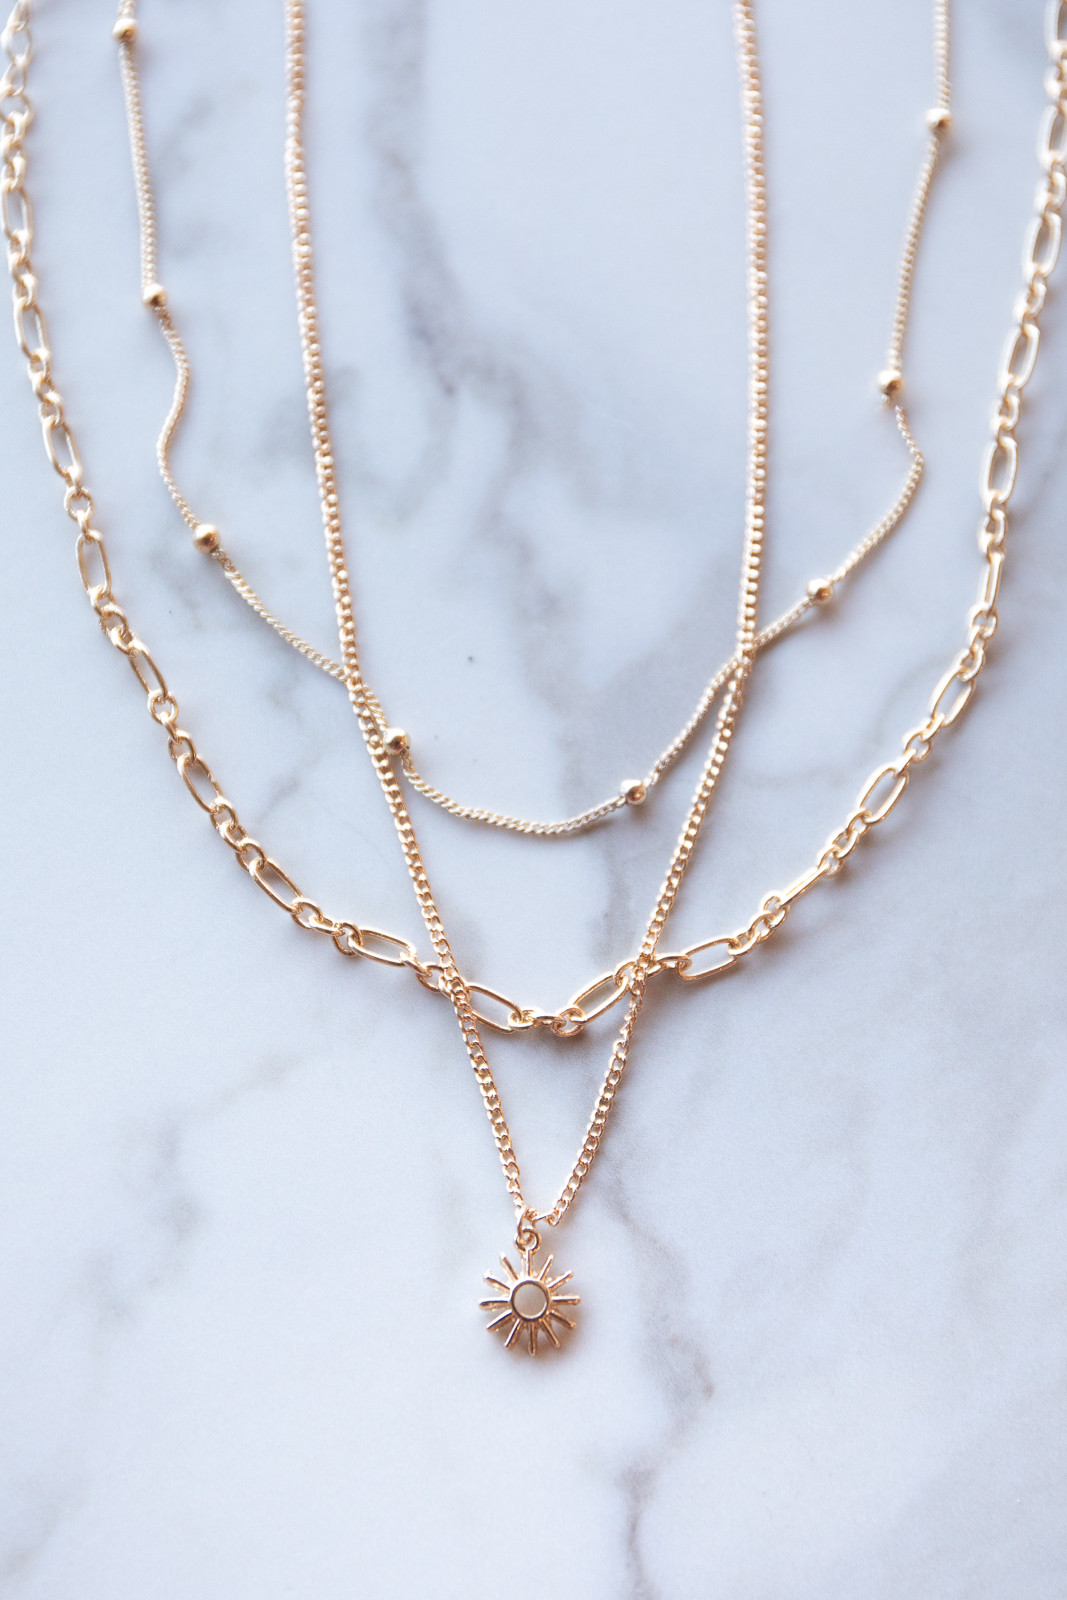 Gold Sun Charm Necklace Set with Lobster Claw Closure